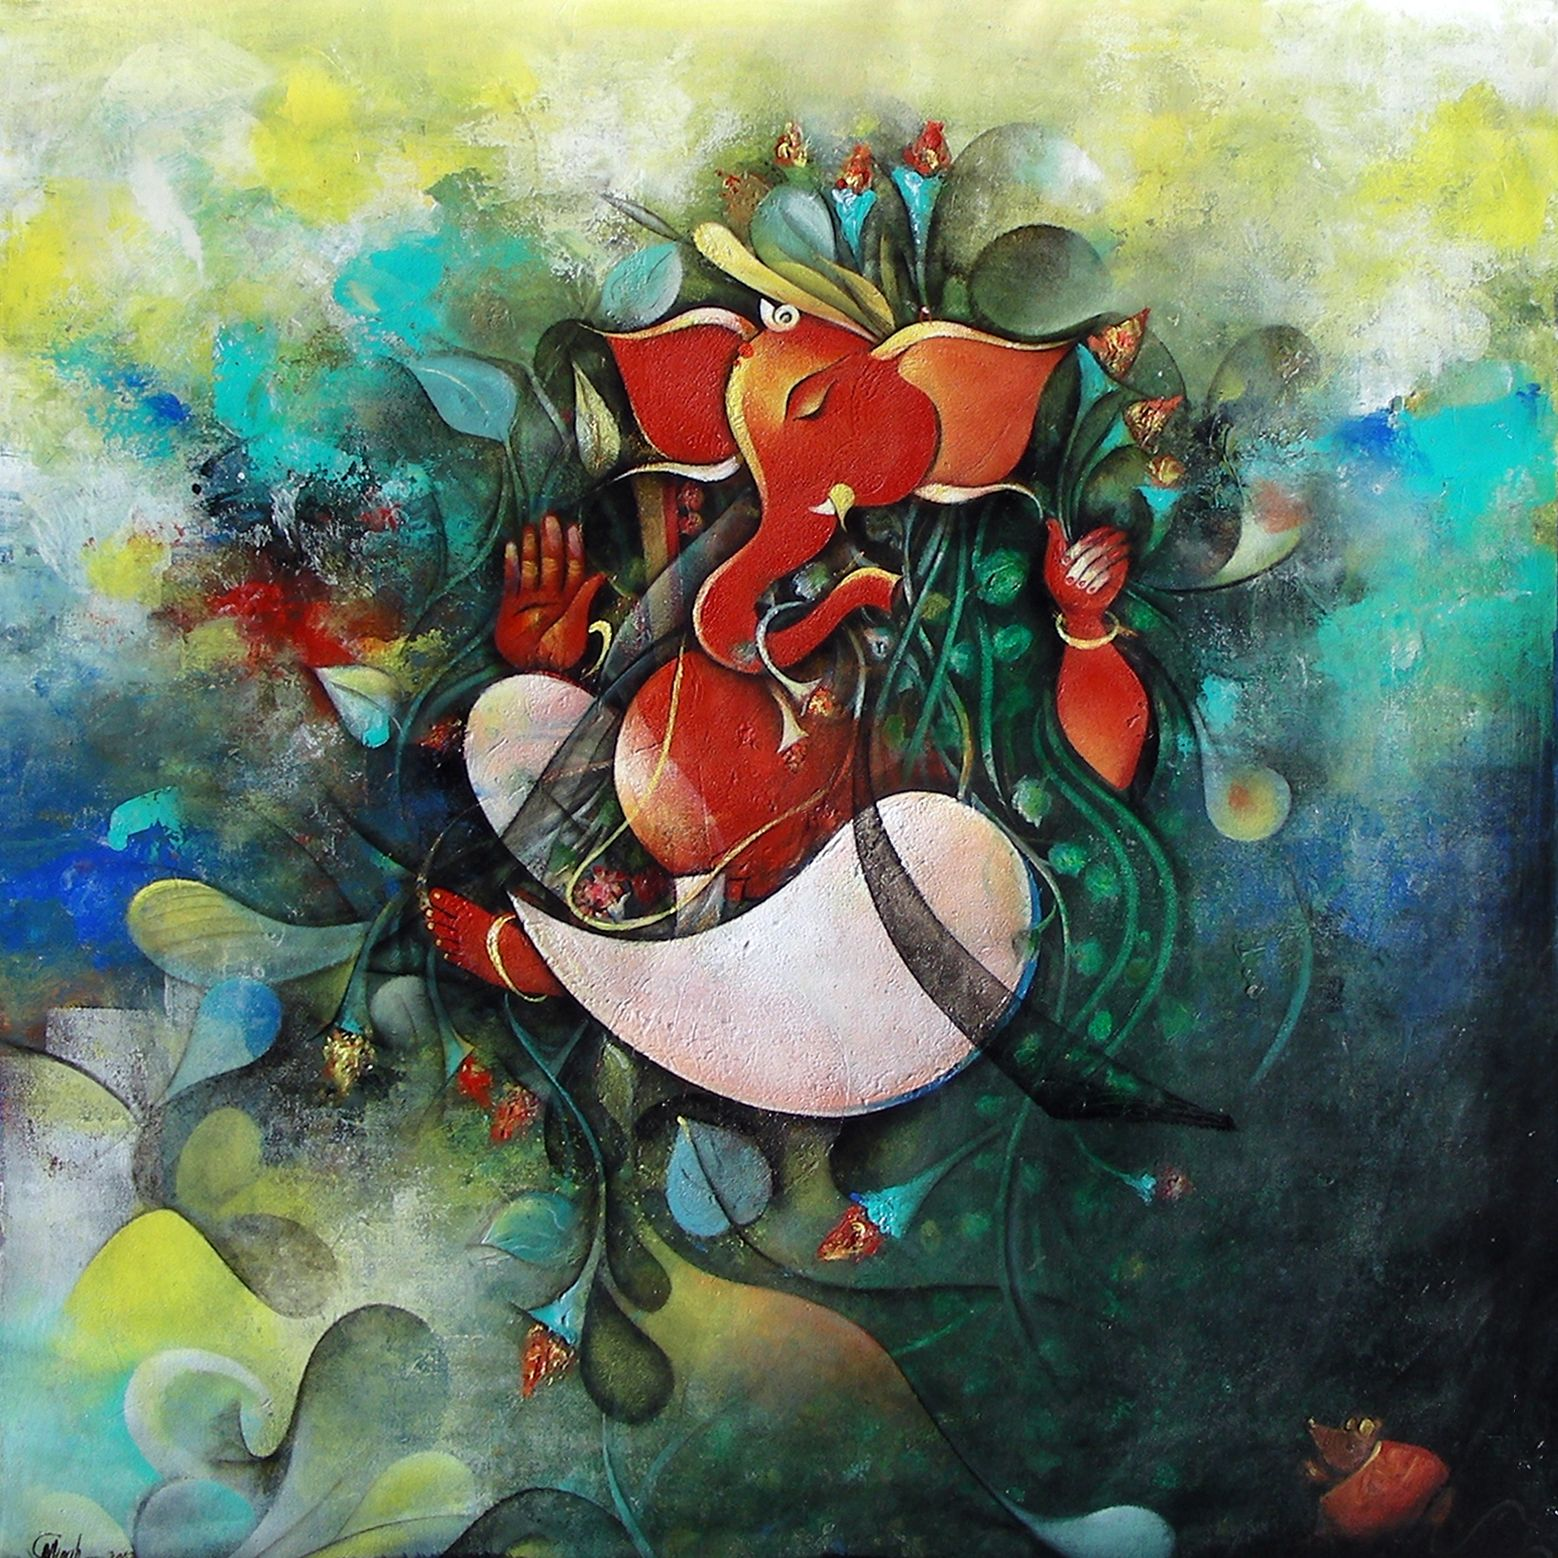 Shri Ganesh Hd Wallpaper: Beautiful Lord Ganesha Art Paintings (Hindu God) For Sale